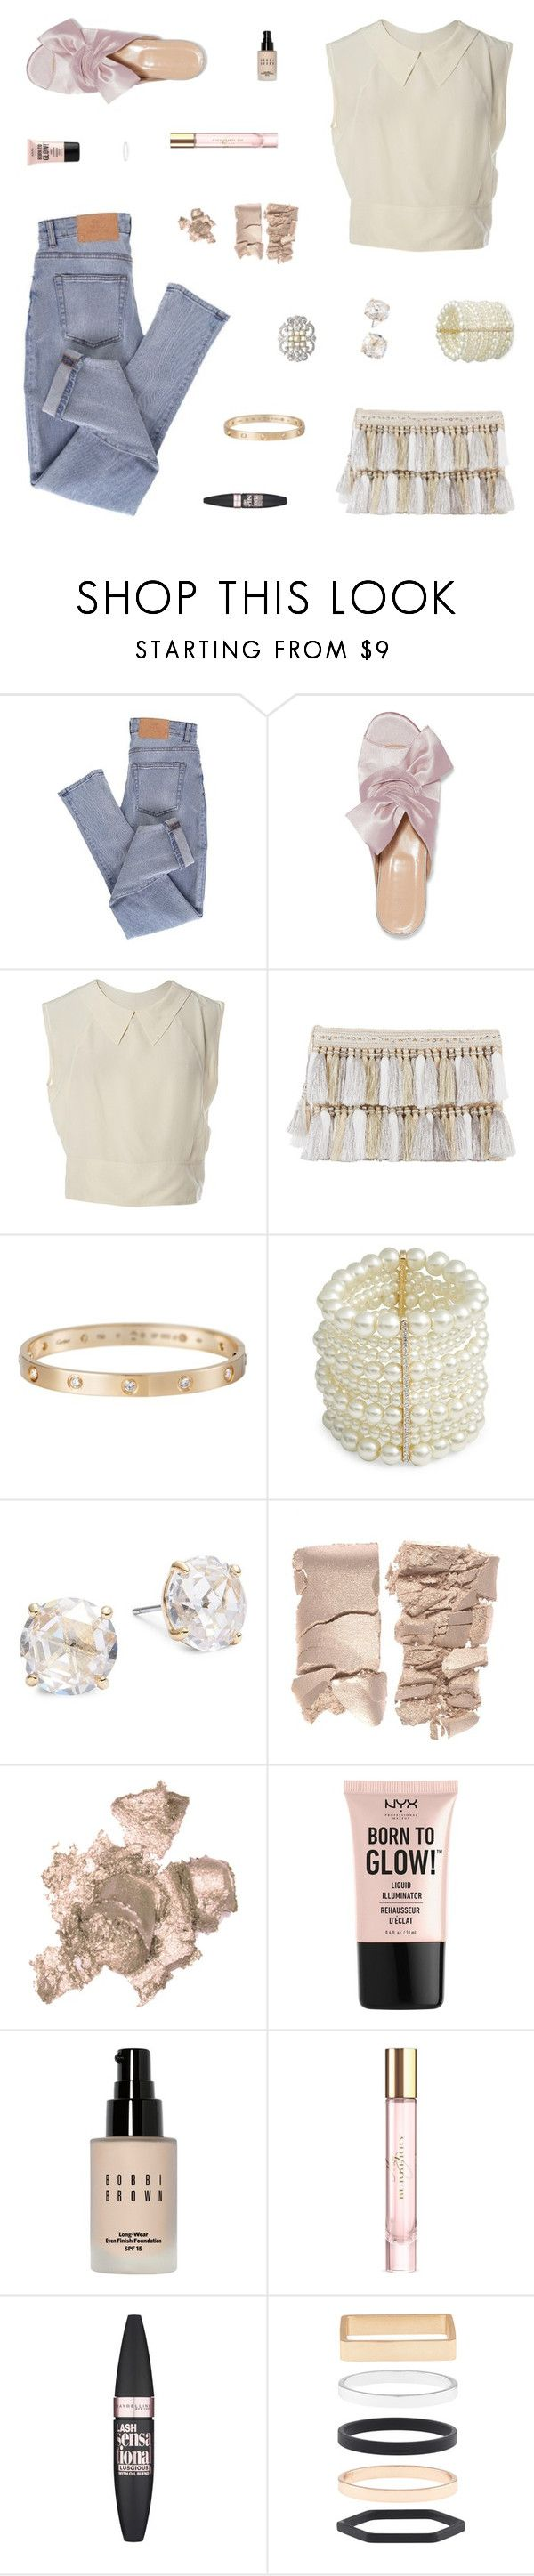 """""""Another Thing Coming"""" by belenloperfido ❤ liked on Polyvore featuring Cheap Monday, Iris & Ink, Chanel, Cartier, Design Lab, Kate Spade, By Terry, NYX, Bobbi Brown Cosmetics and Burberry"""